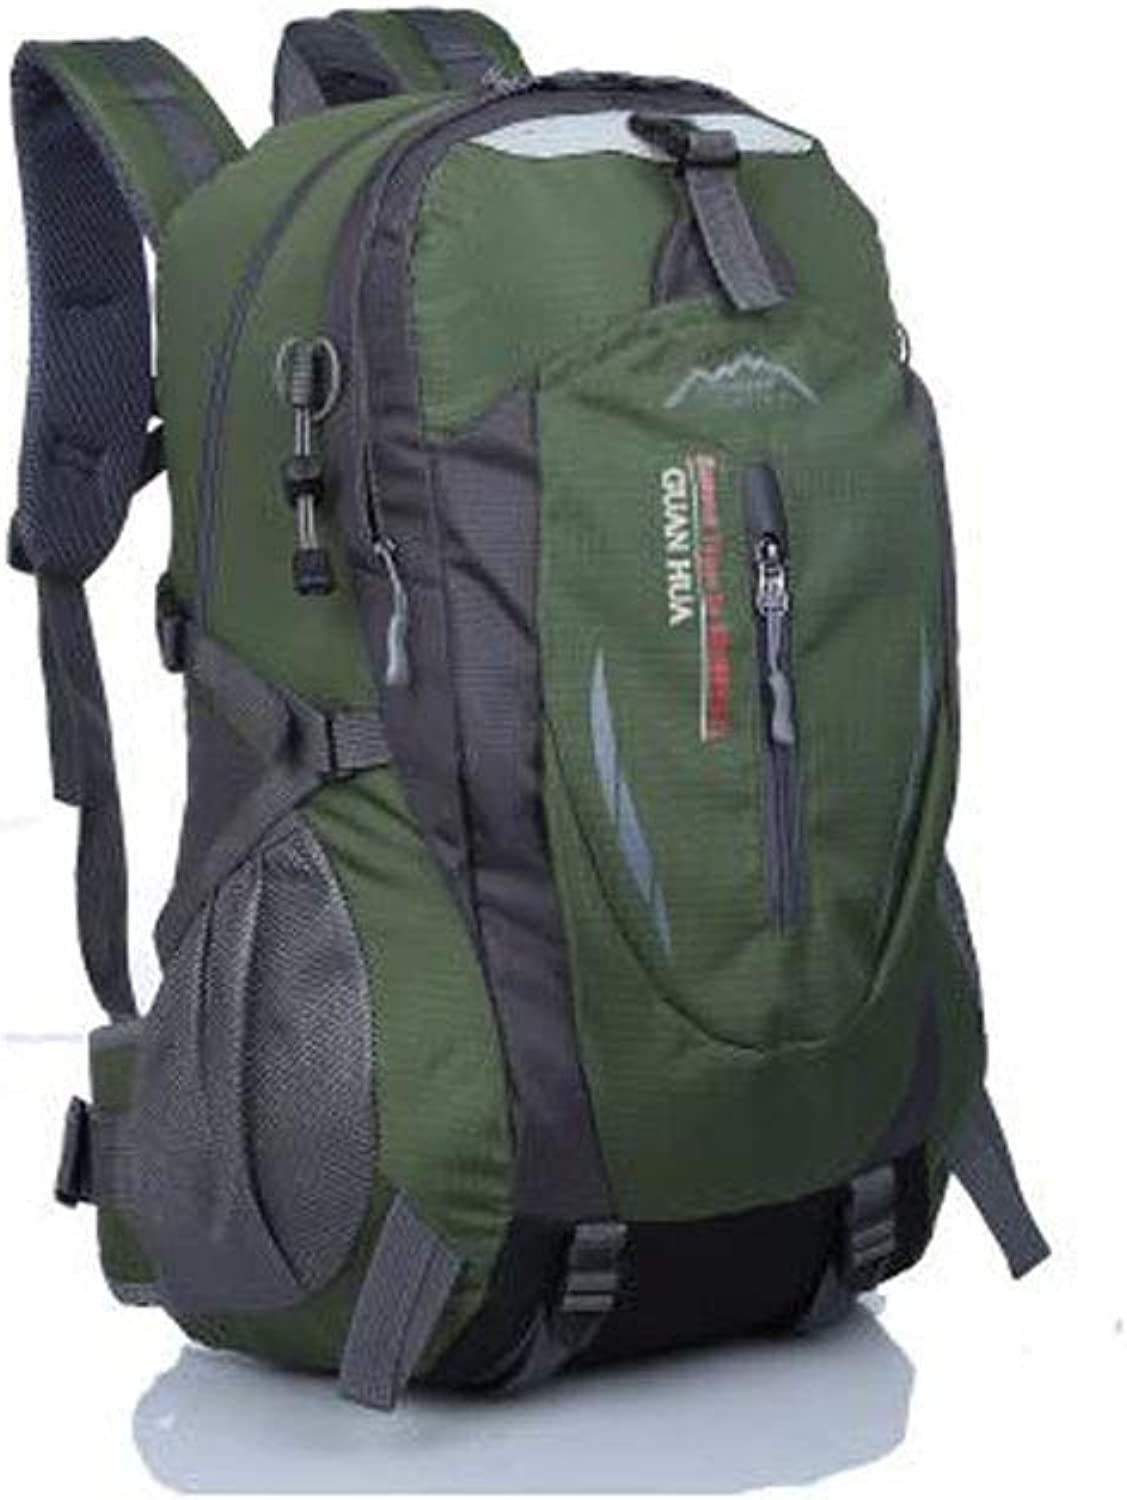 HENG Backpack for Man,Outdoor Sports Fashion Ultra Lightweight Backpack, Dark bluee, Pink, Military Green, orange, for Hiking, Traveling & Camping (color   Military Green)